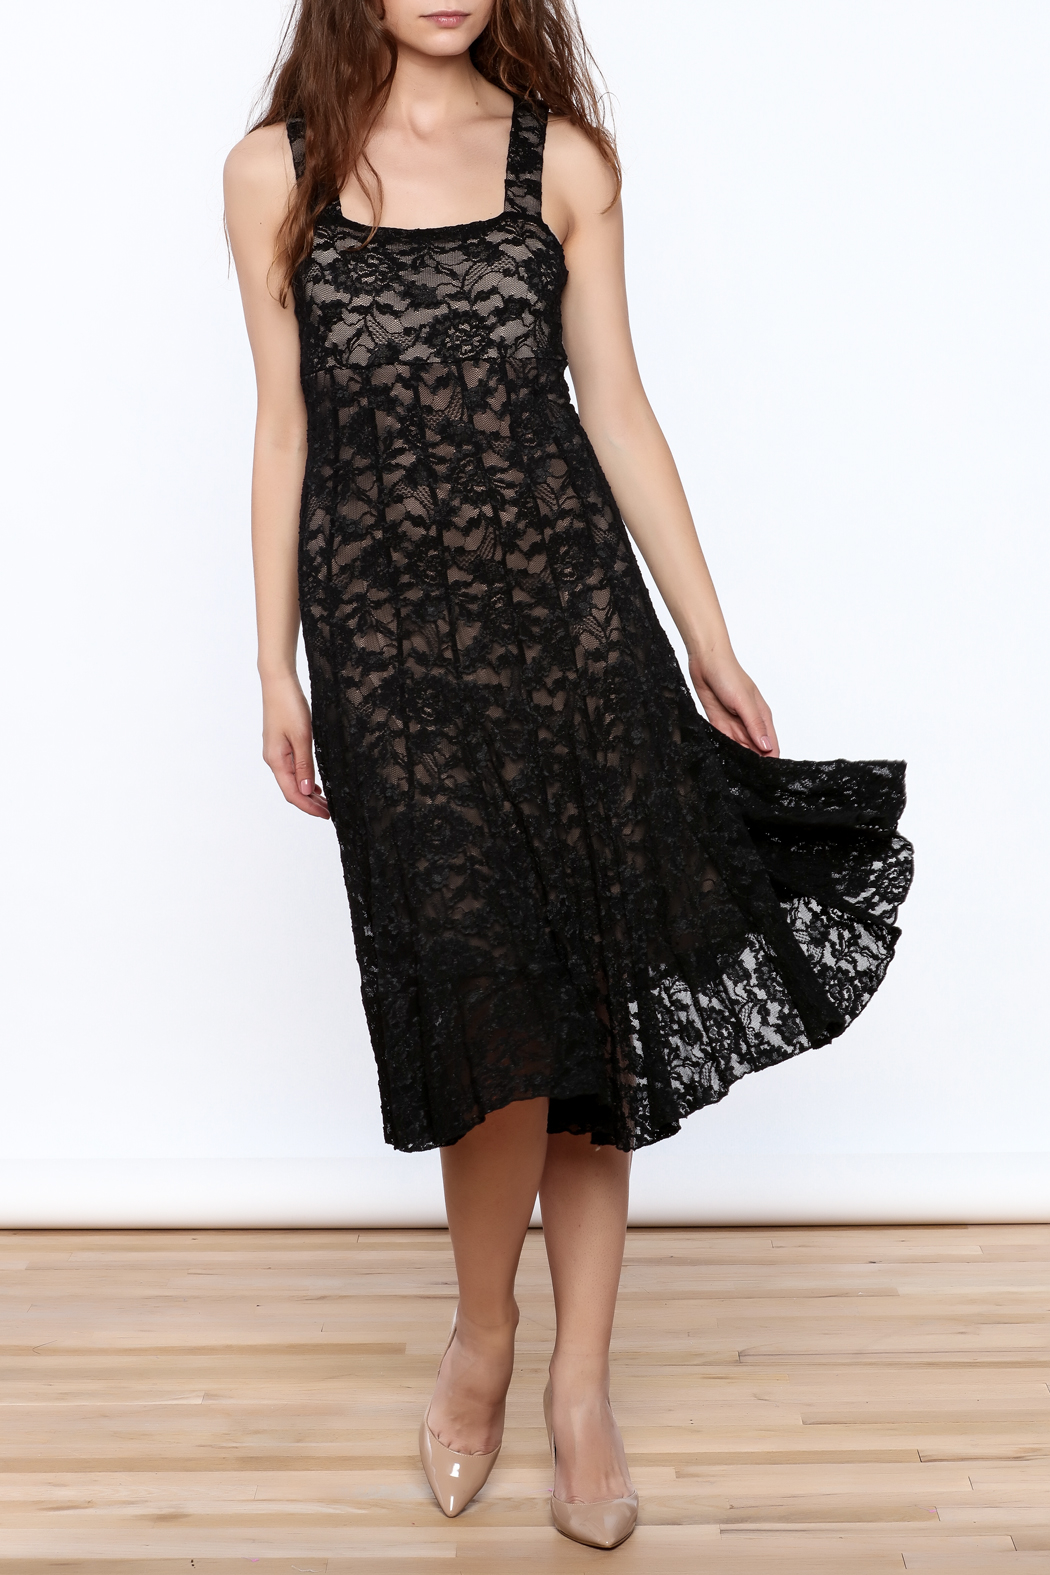 Sharon Max Black Lace Midi Dress - Front Full Image